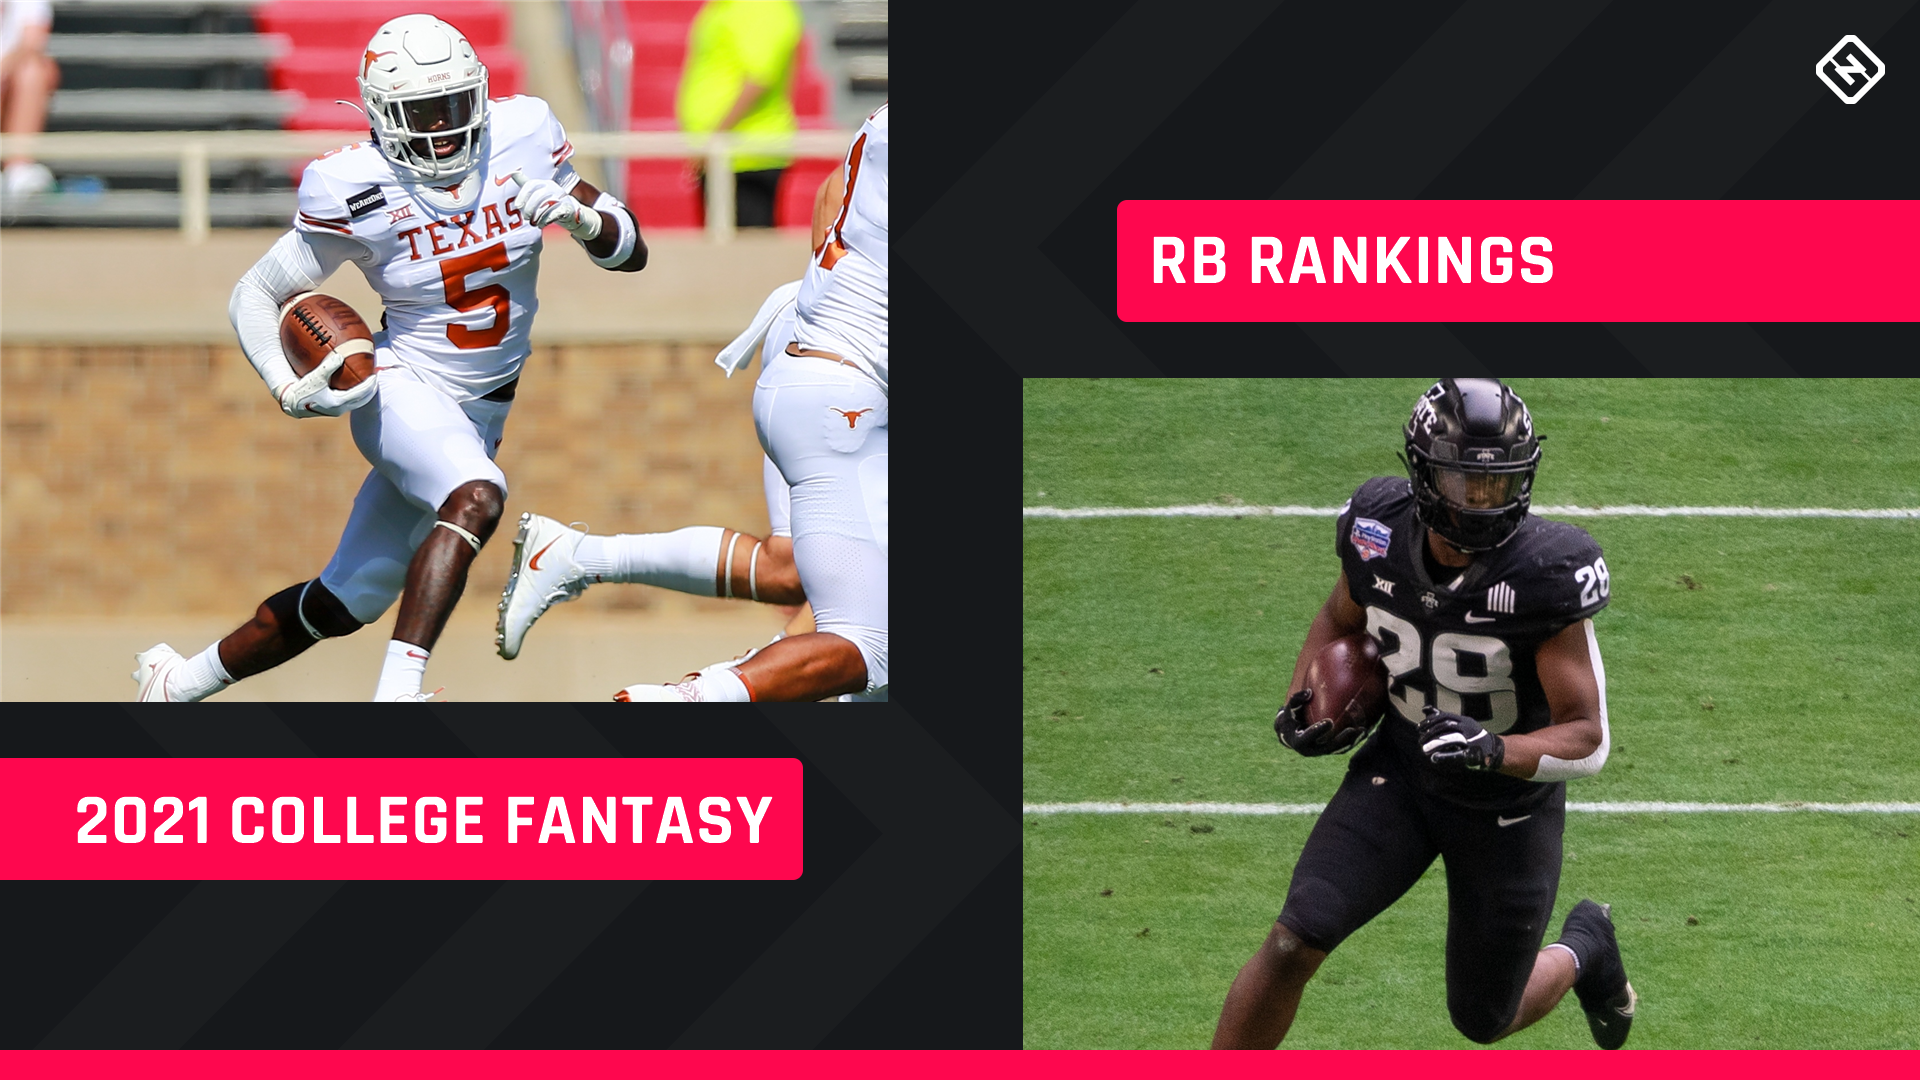 College Fantasy Football RB Rankings 2021: Top running backs, sleepers to know